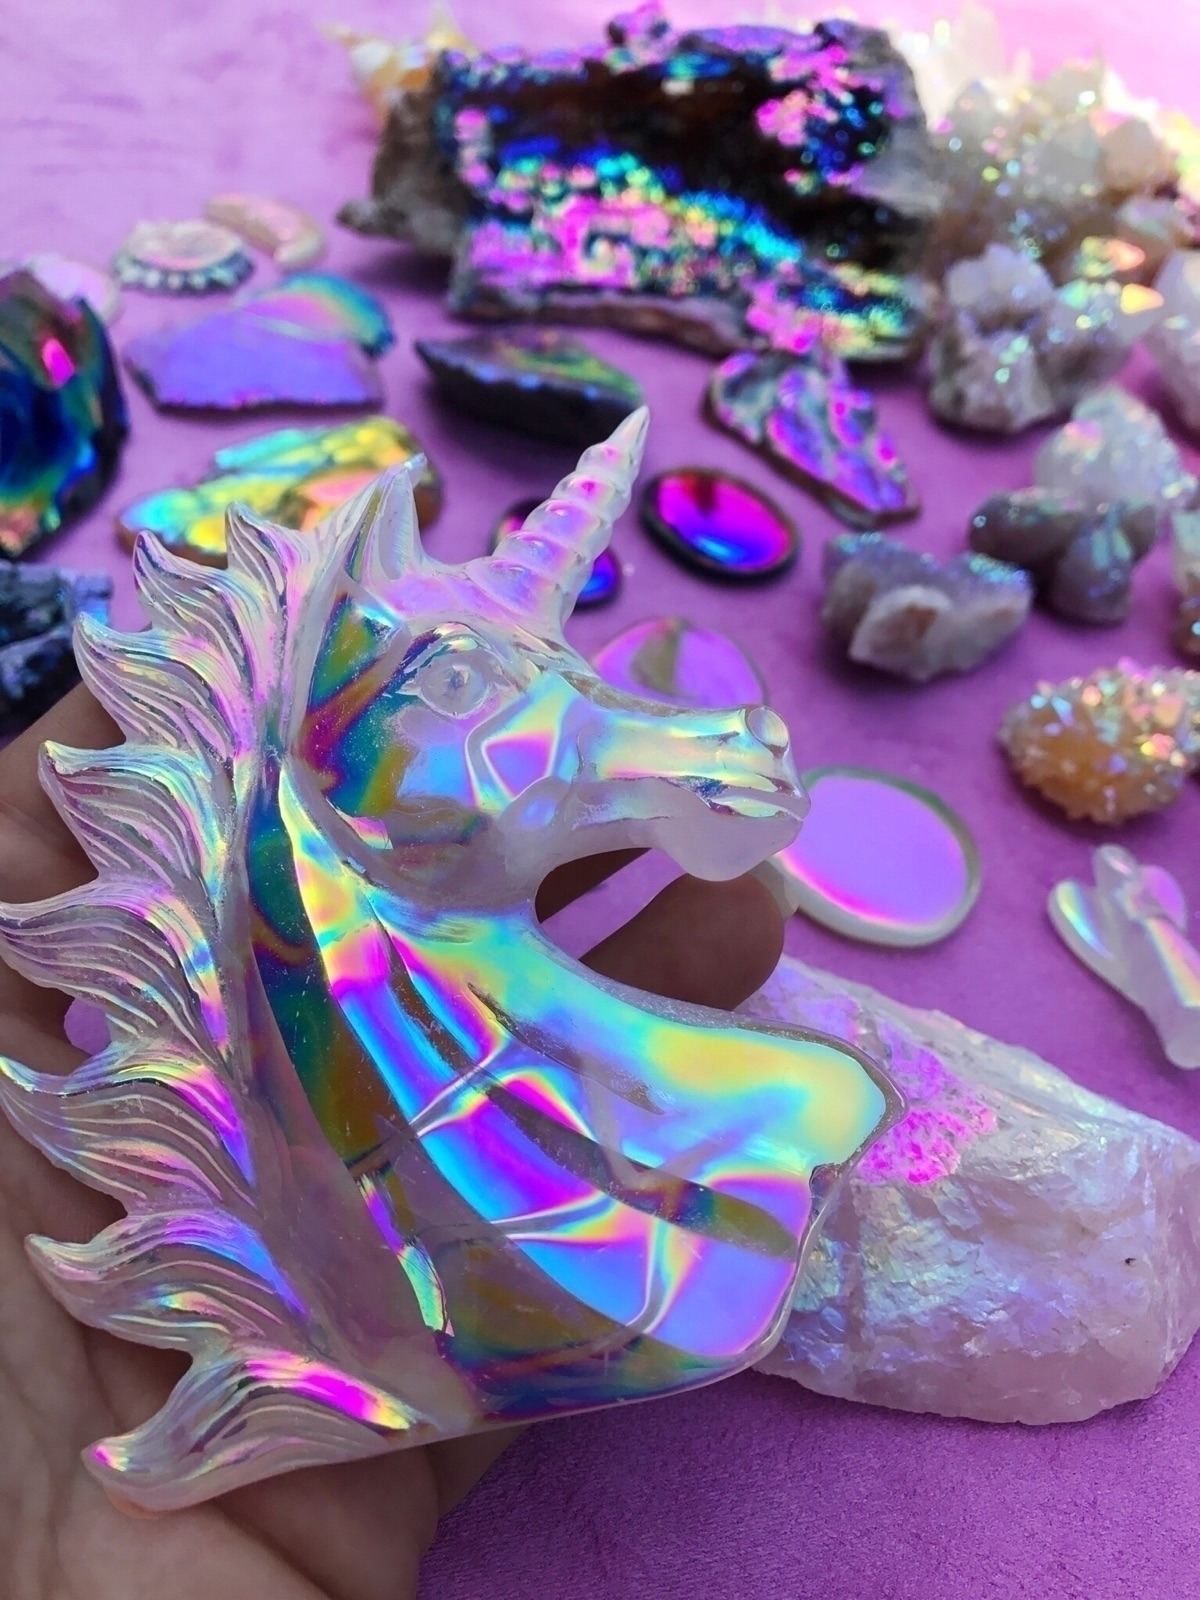 Crystal Unicorn covered - crystal - aurafy | ello